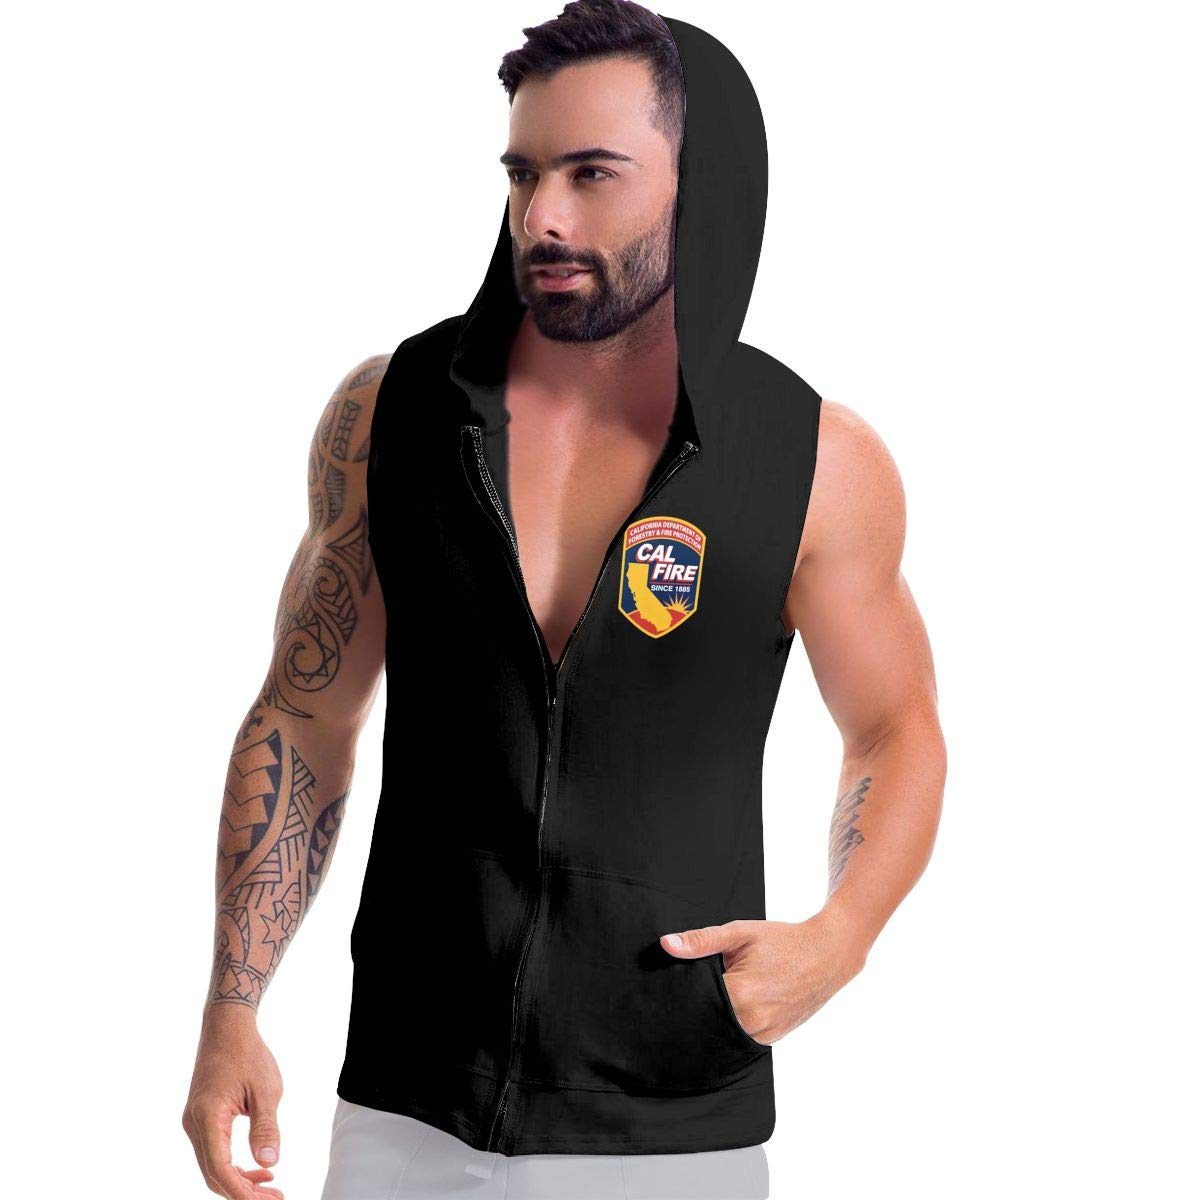 Ice-Long Out X Cal Fire California Strong Mens Fashion Sleeveless Zip-up Hoodie Black with Pocket